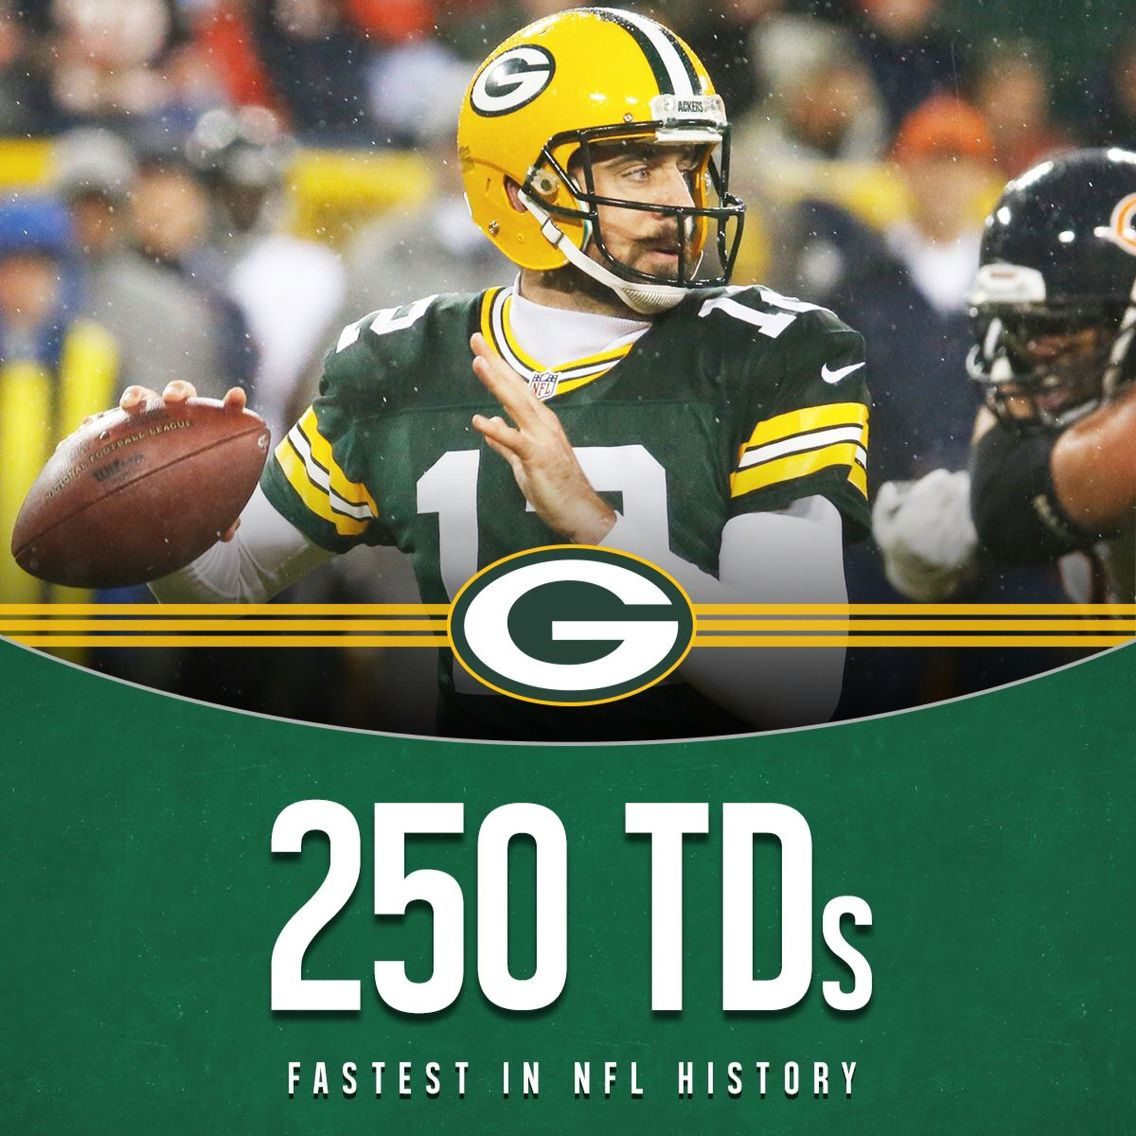 Aaron Rodgers Green Bay Packers Fans Packers Football Nfl Green Bay